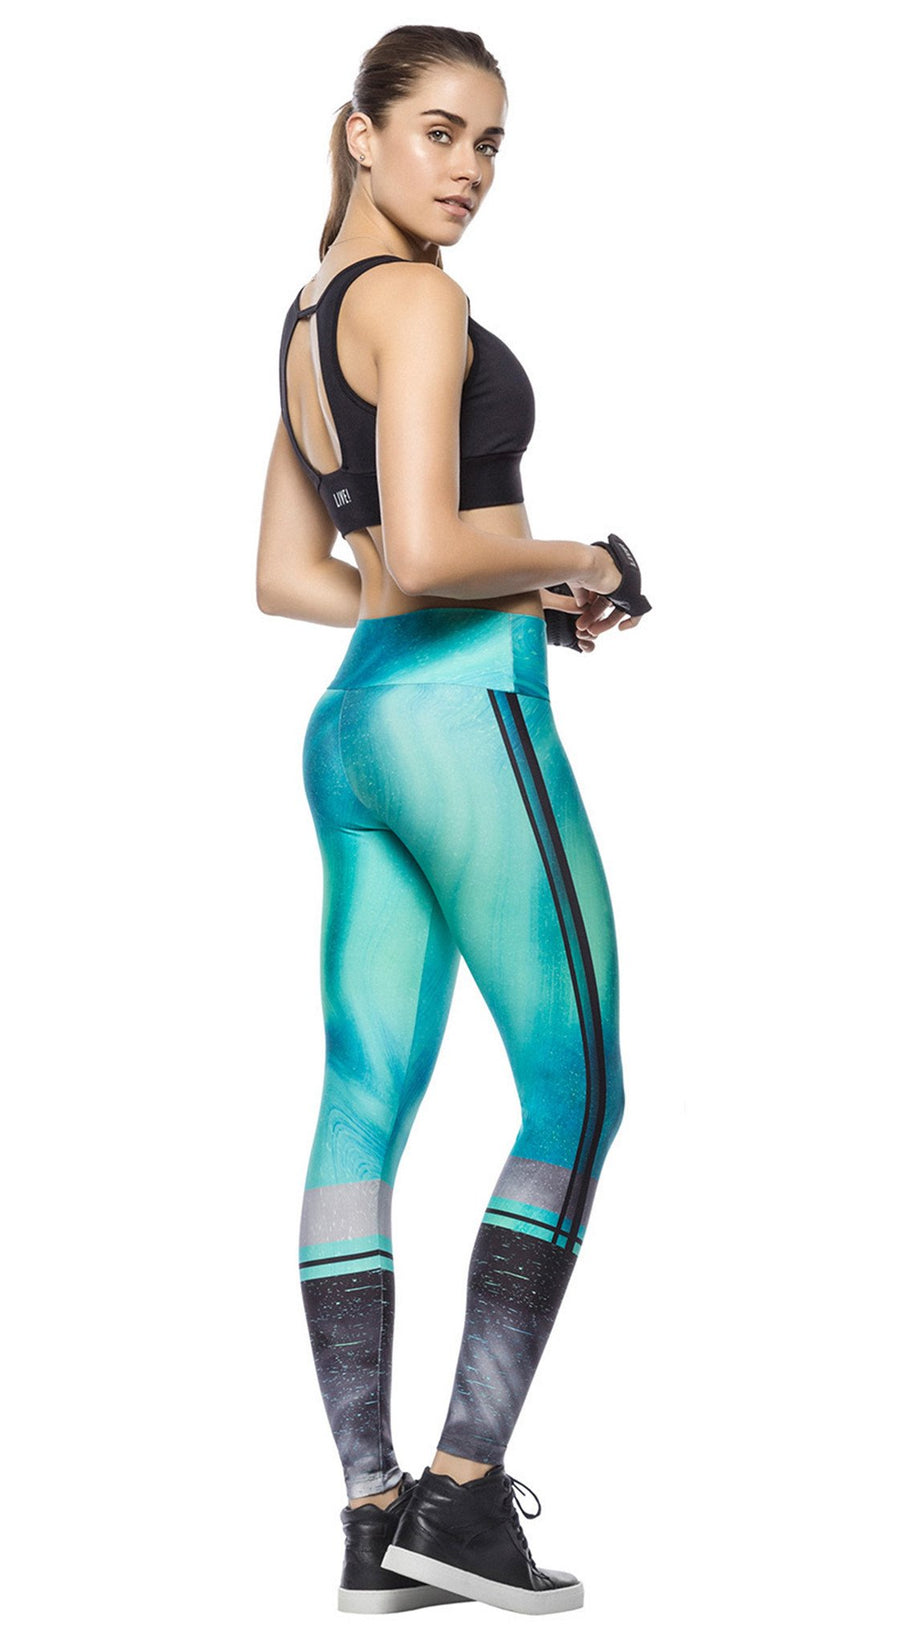 Yoga Pants - Surf Waikiki Tight